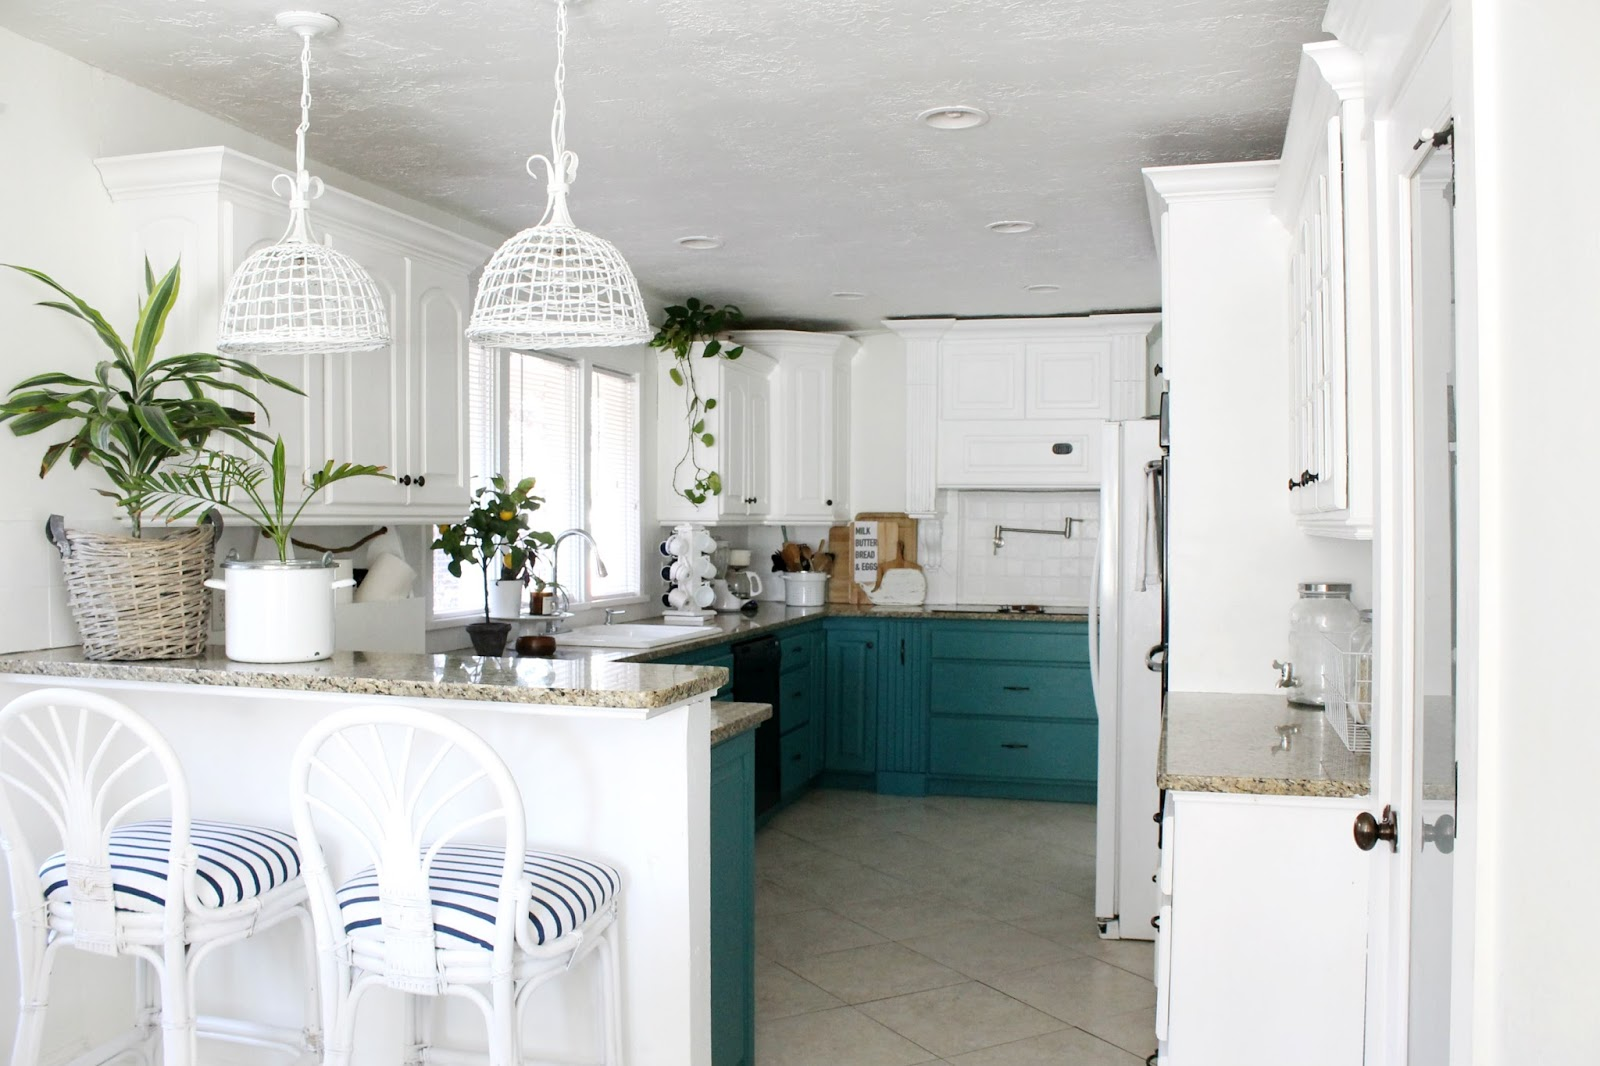 See Our Lucky Green Kitchen Cabinets!! - The Wicker House